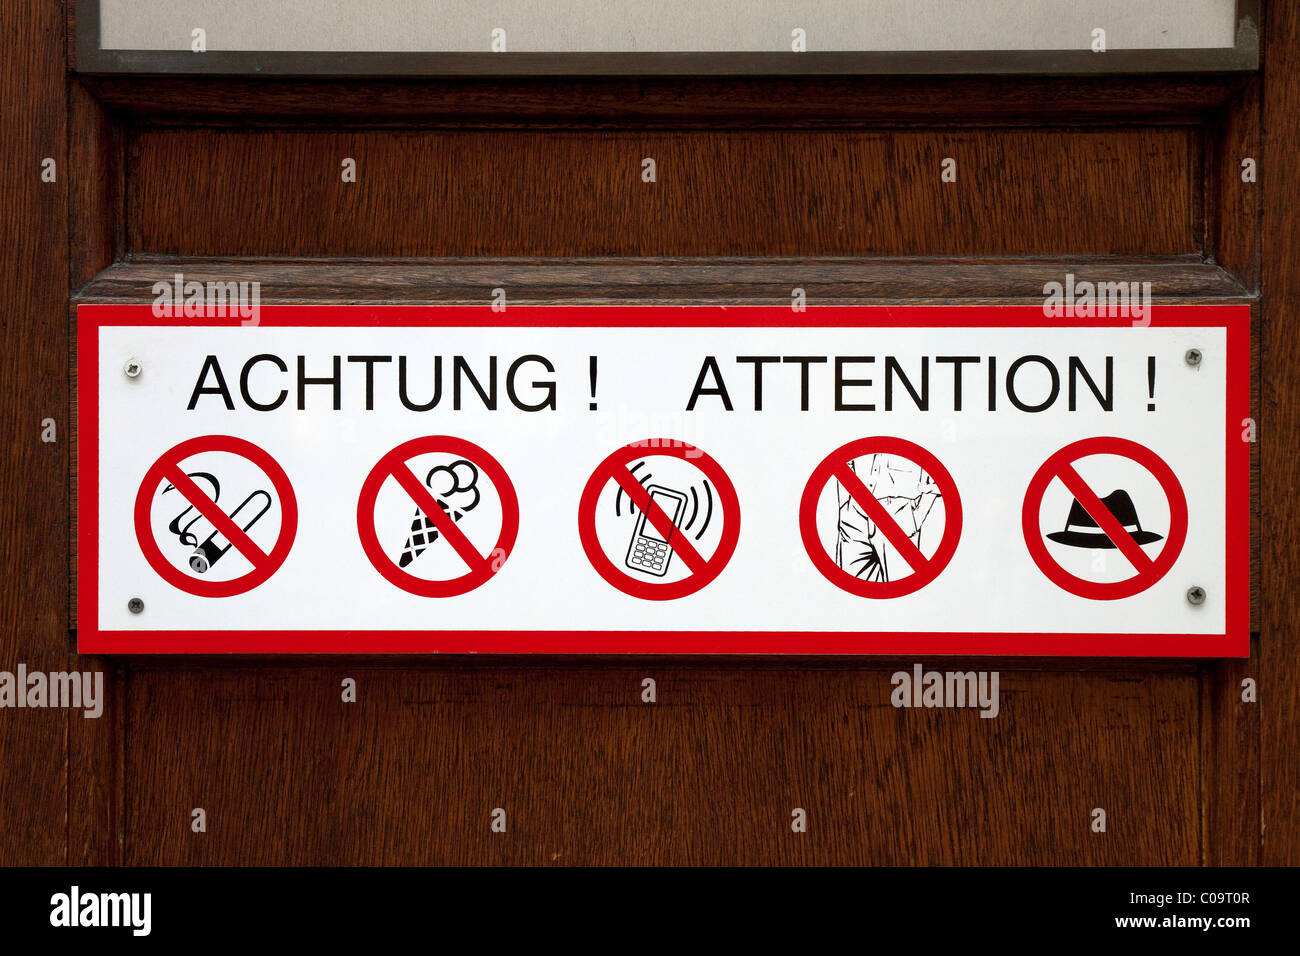 Many prohibitions on a sign, symbol, good manners, decency - Stock Image